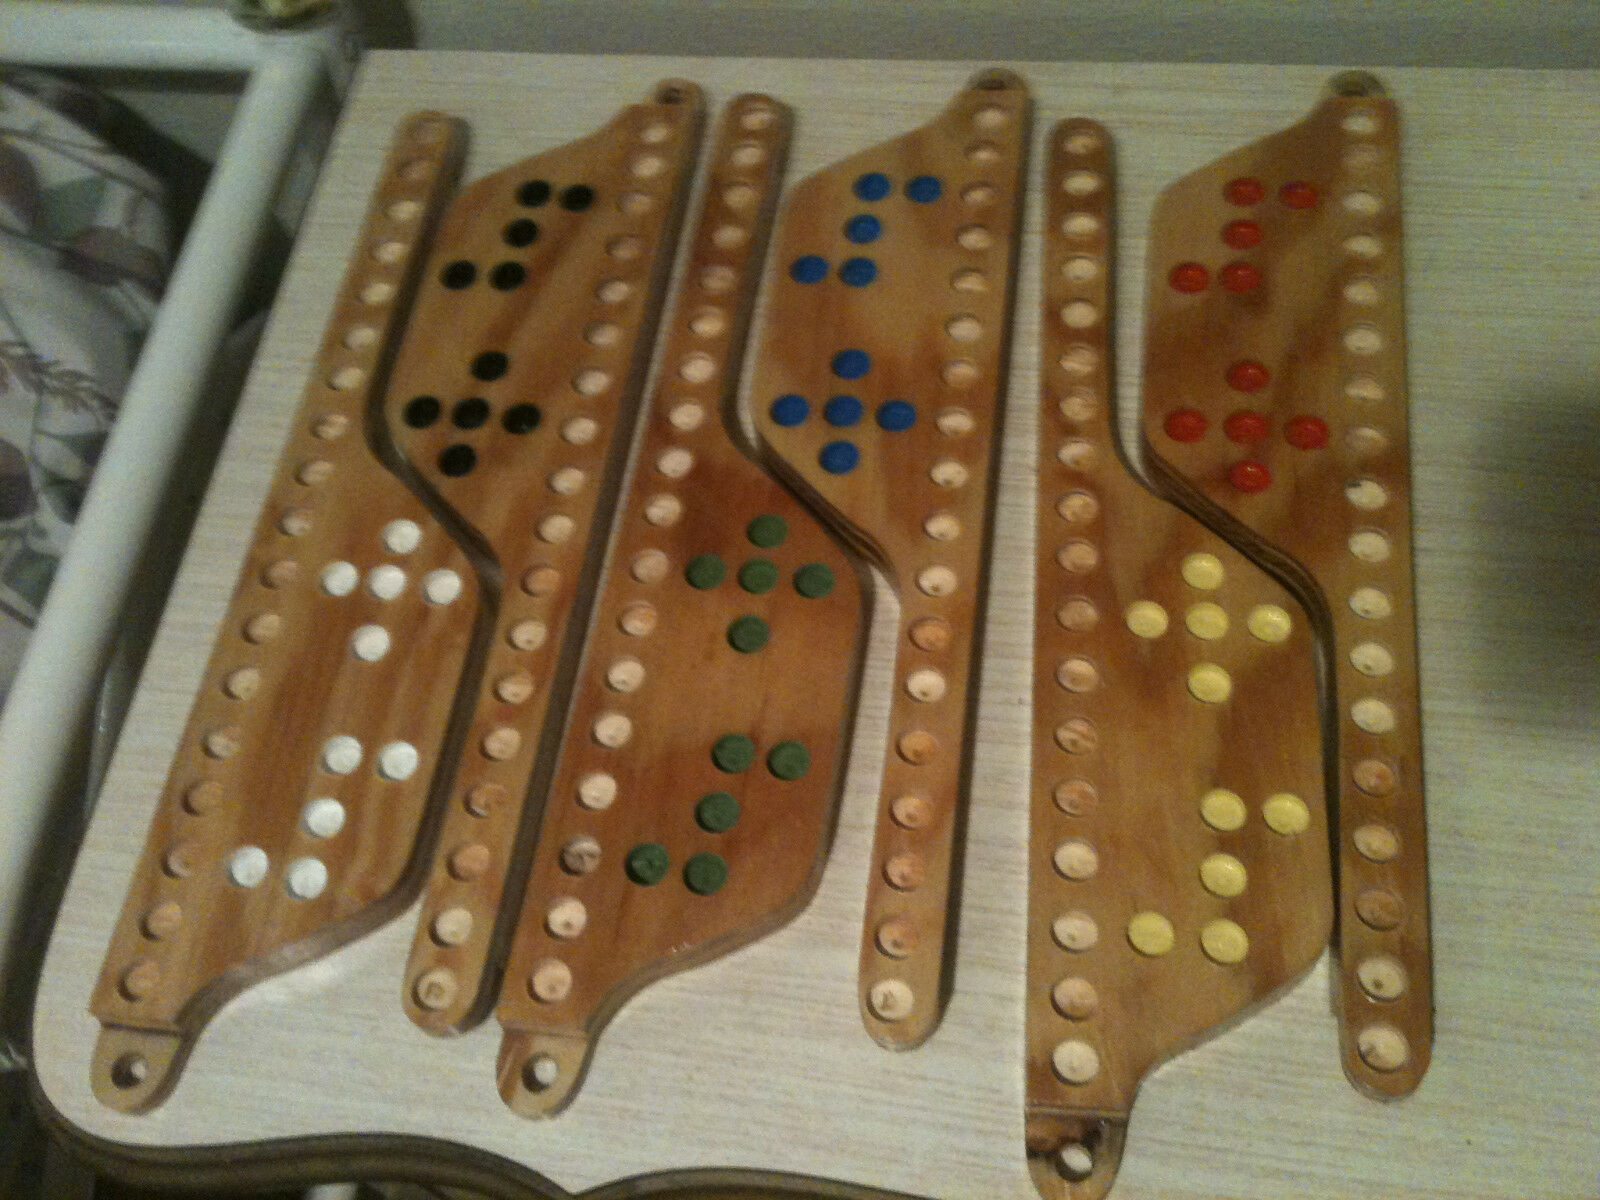 2 - 6-Player MARBLES and JOKERS Game NEW HANDMADE Solid Wood